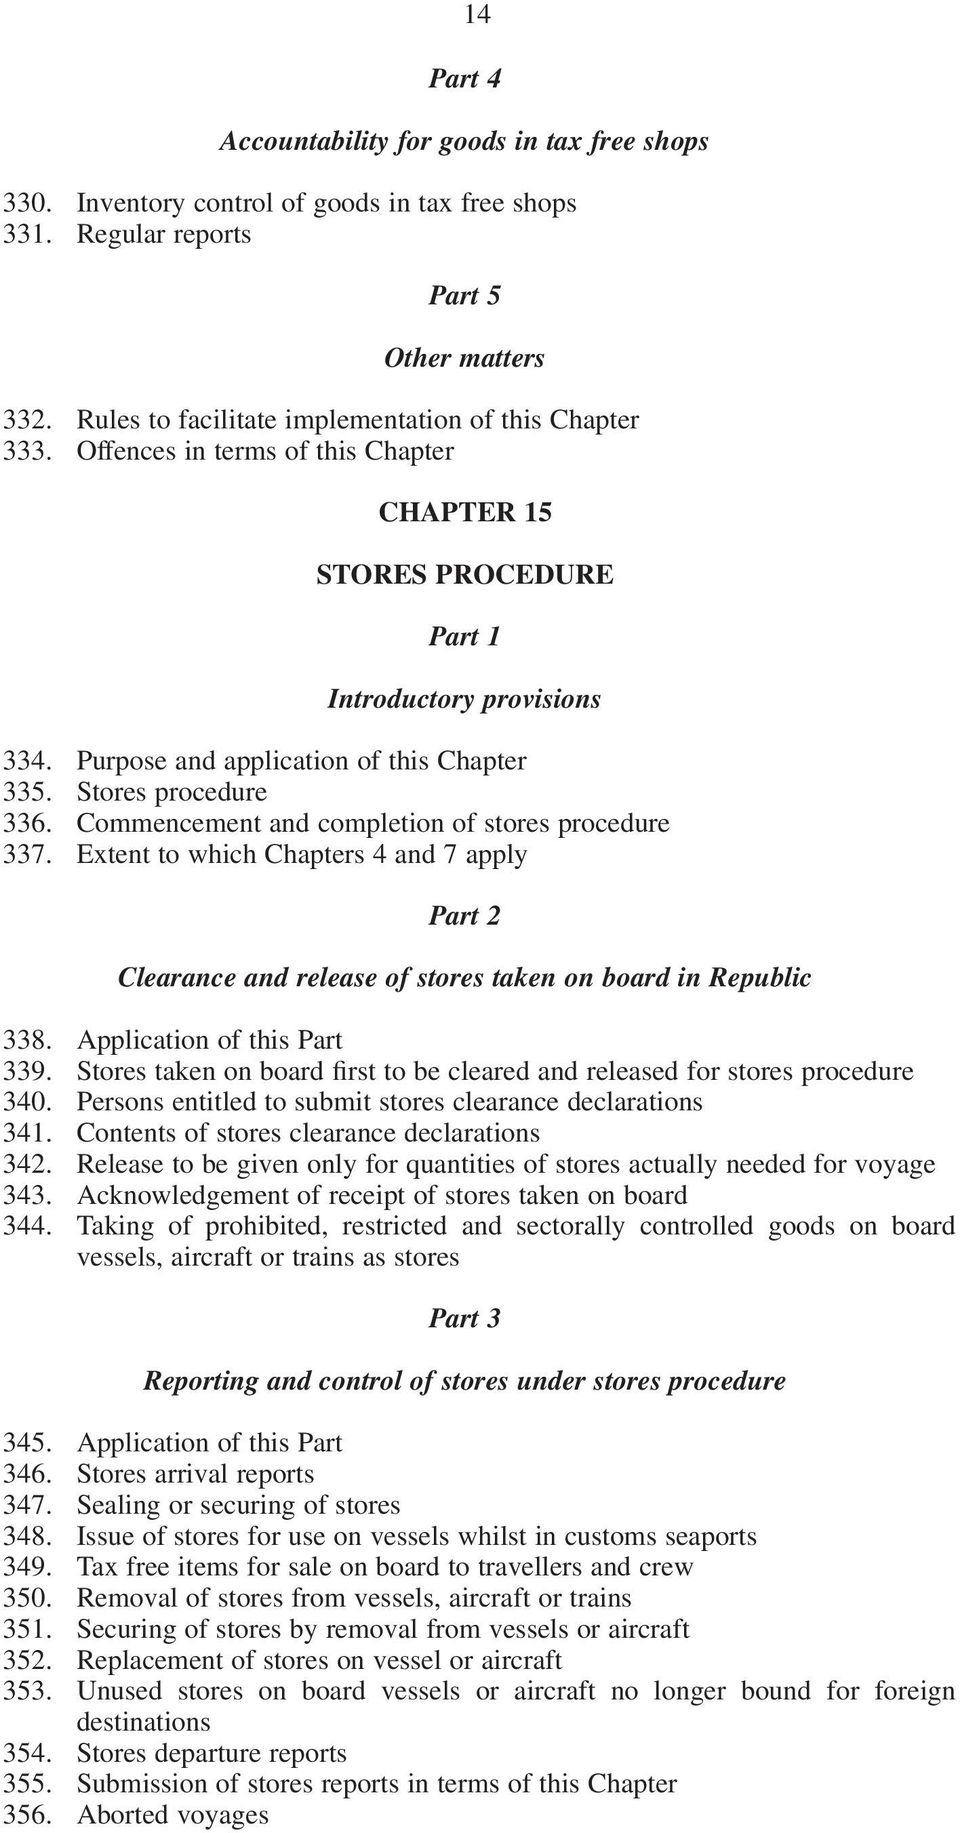 Stores procedure 336. Commencement and completion of stores procedure 337. Extent to which Chapters 4 and 7 apply Part 2 Clearance and release of stores taken on board in Republic 338.